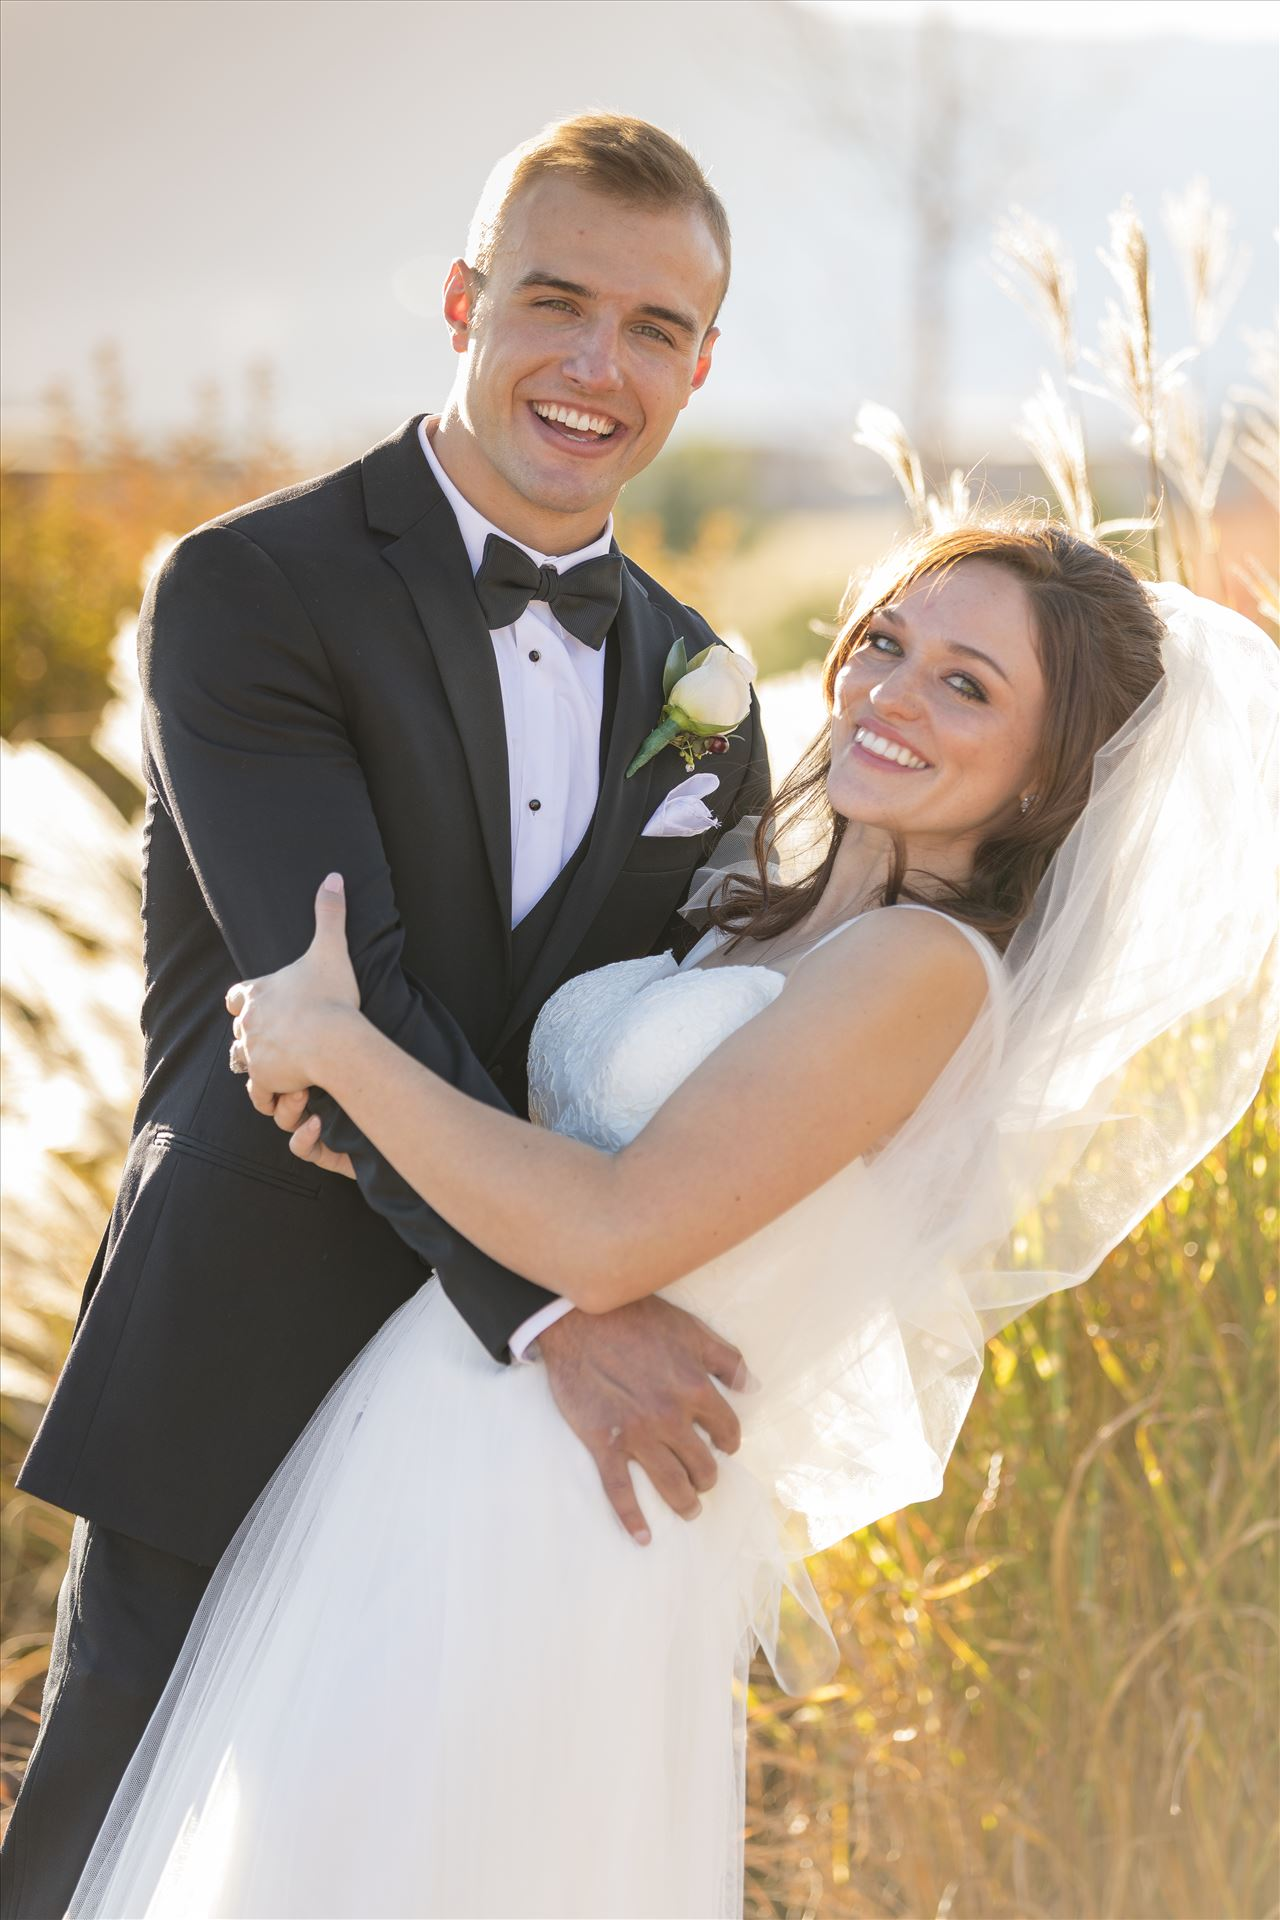 Bride and Groom - Anna and Dylan - Anna and Dylan at the Cordera Community Center in Colorado Springs, Colorado. by Scott Smith Photos